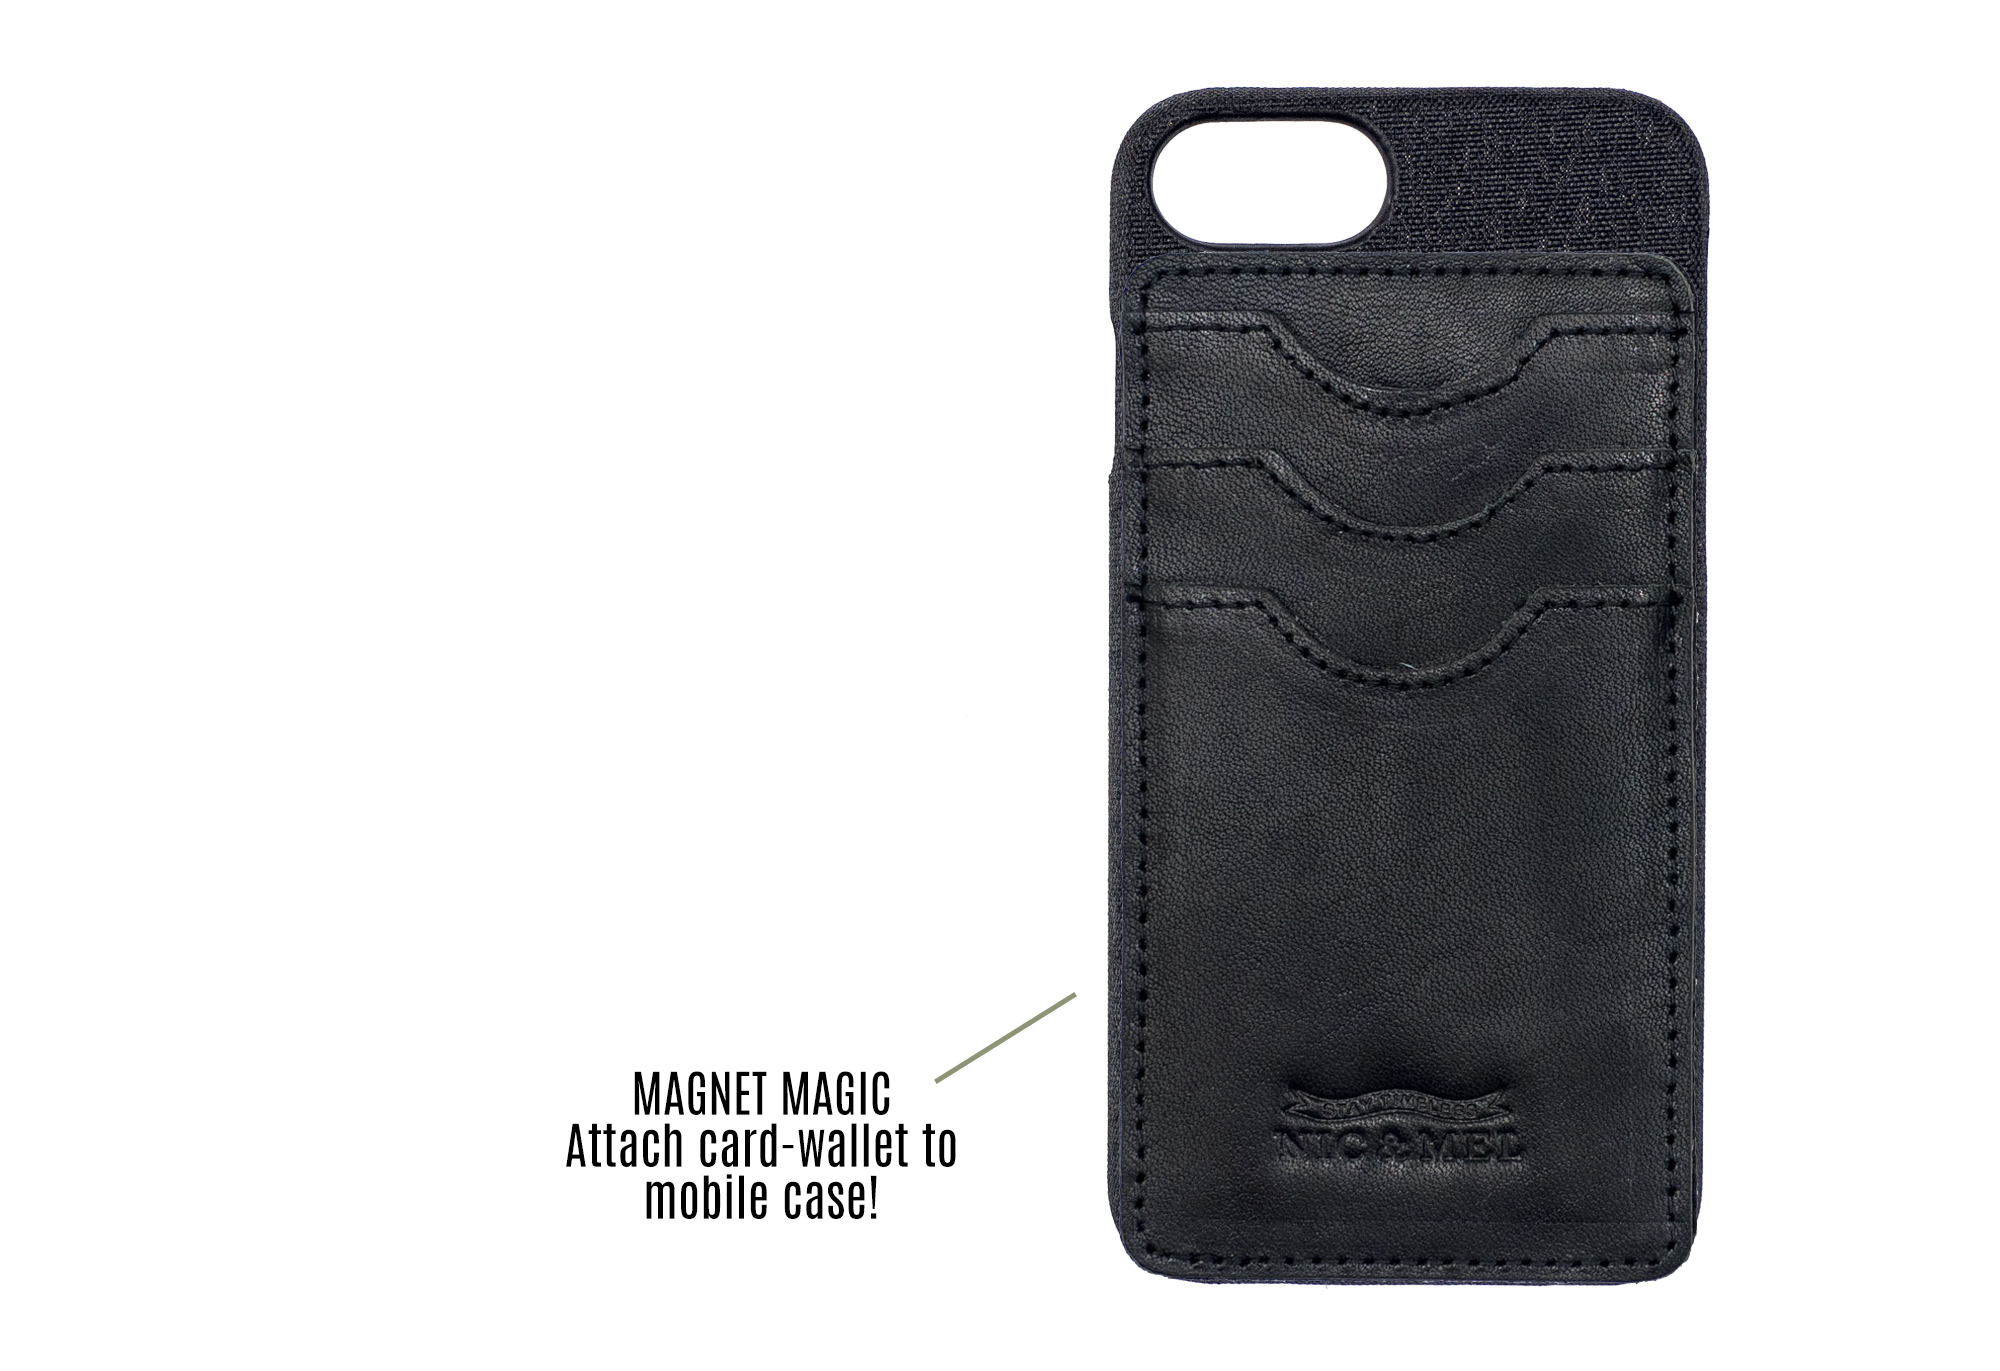 Andy Magnetic Wallet and iPhone Case